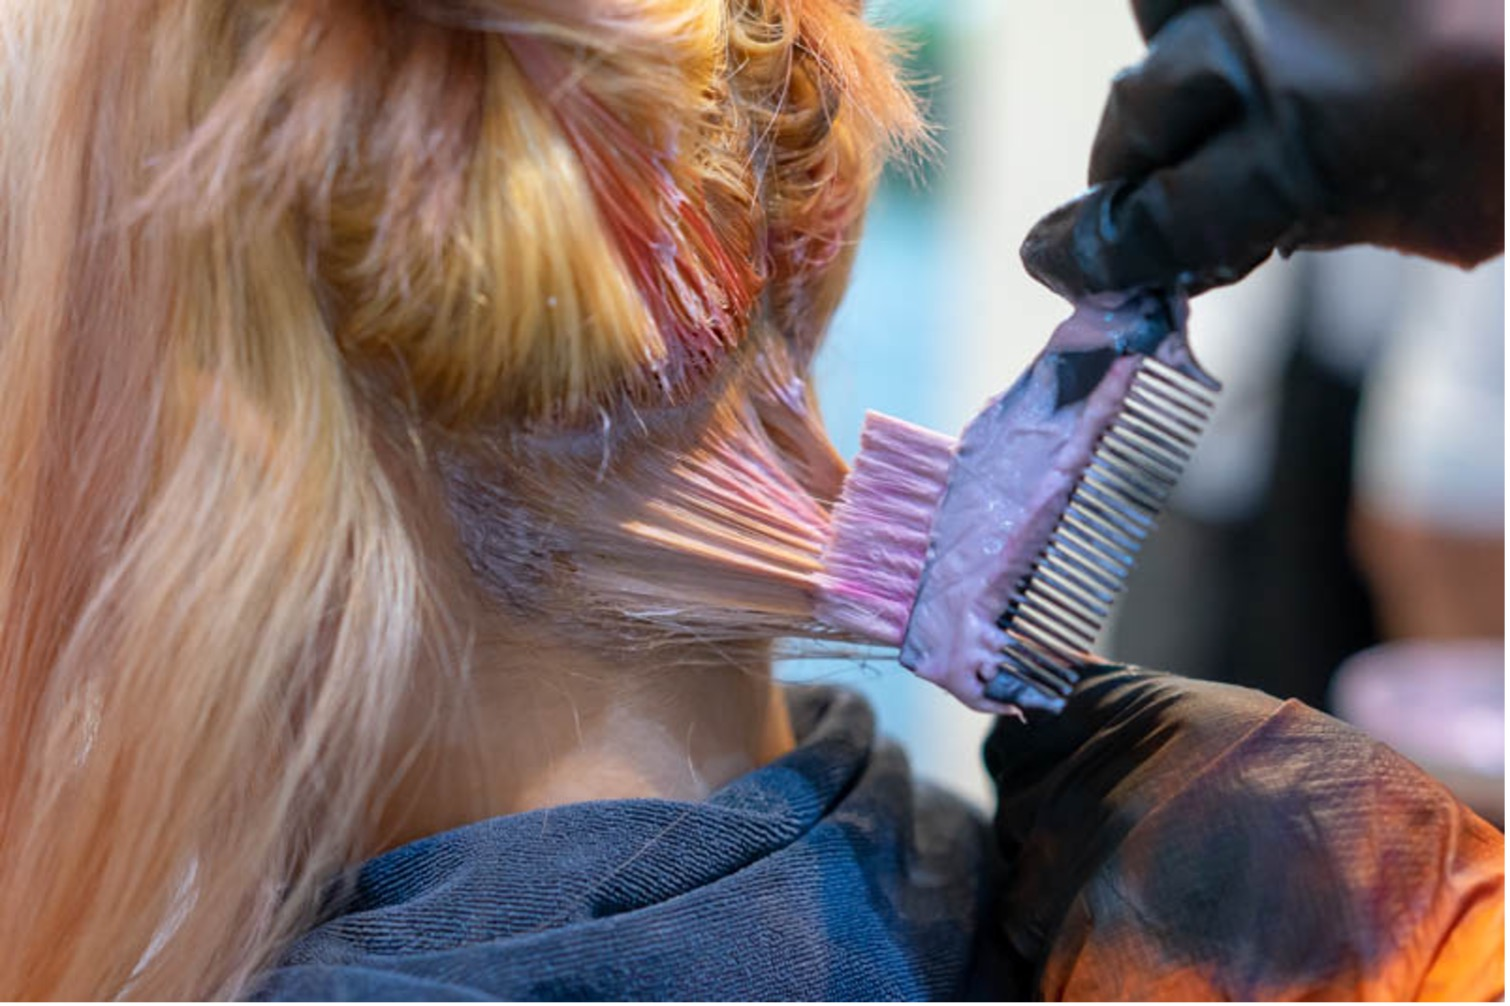 Pink Hair Dyeing at Hairlux